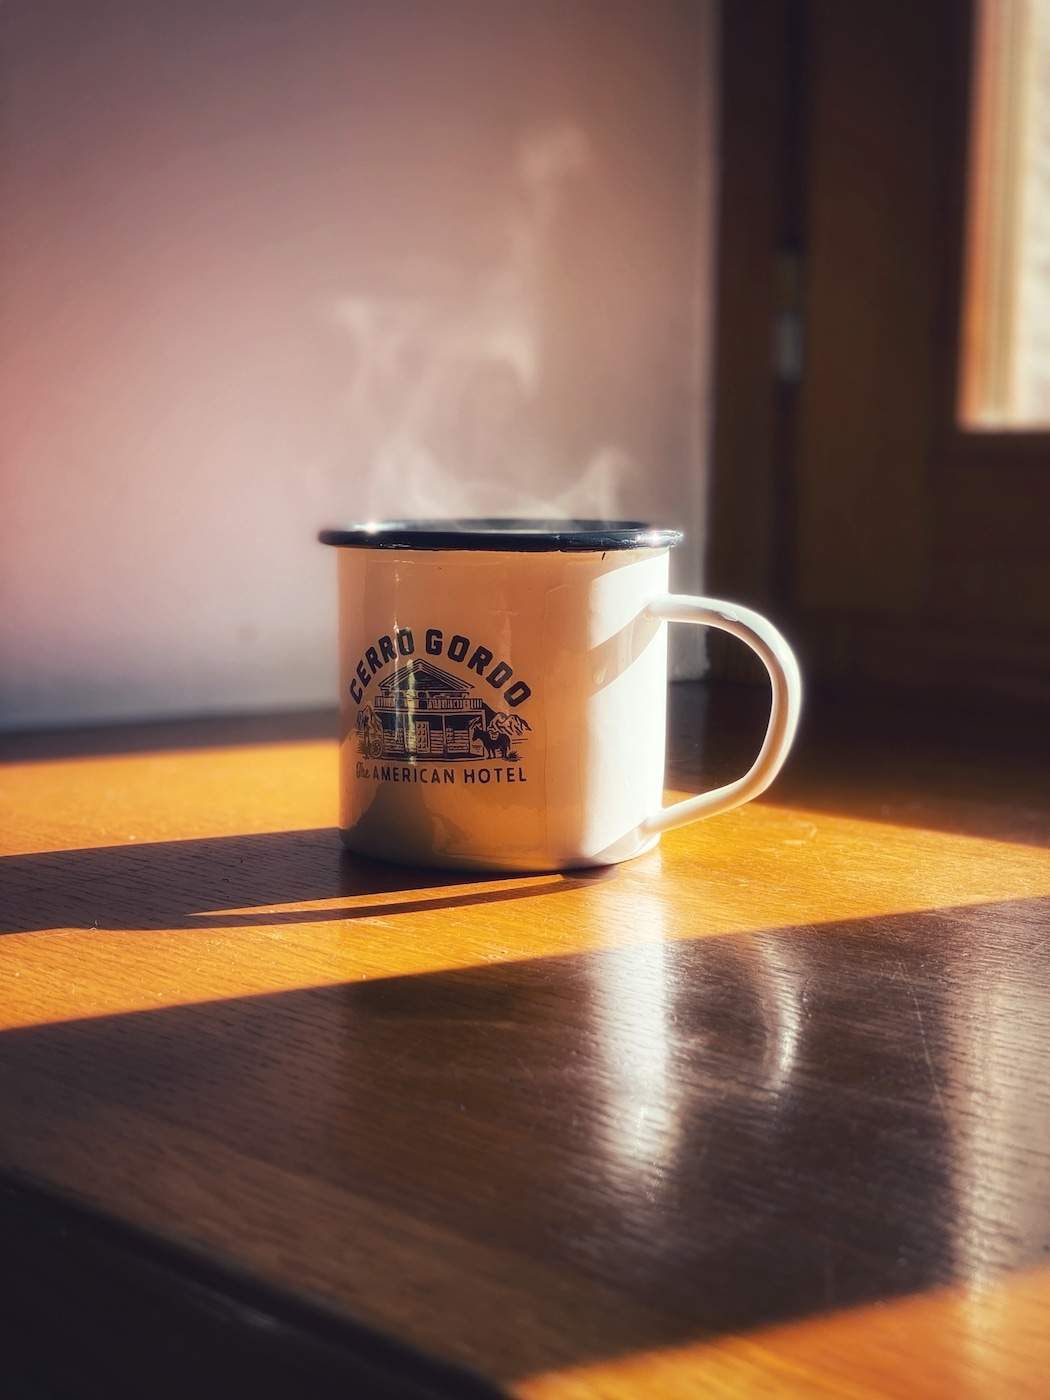 An enamelware cup resting on a table with steaming coffee in it lit by the sun shining through the window